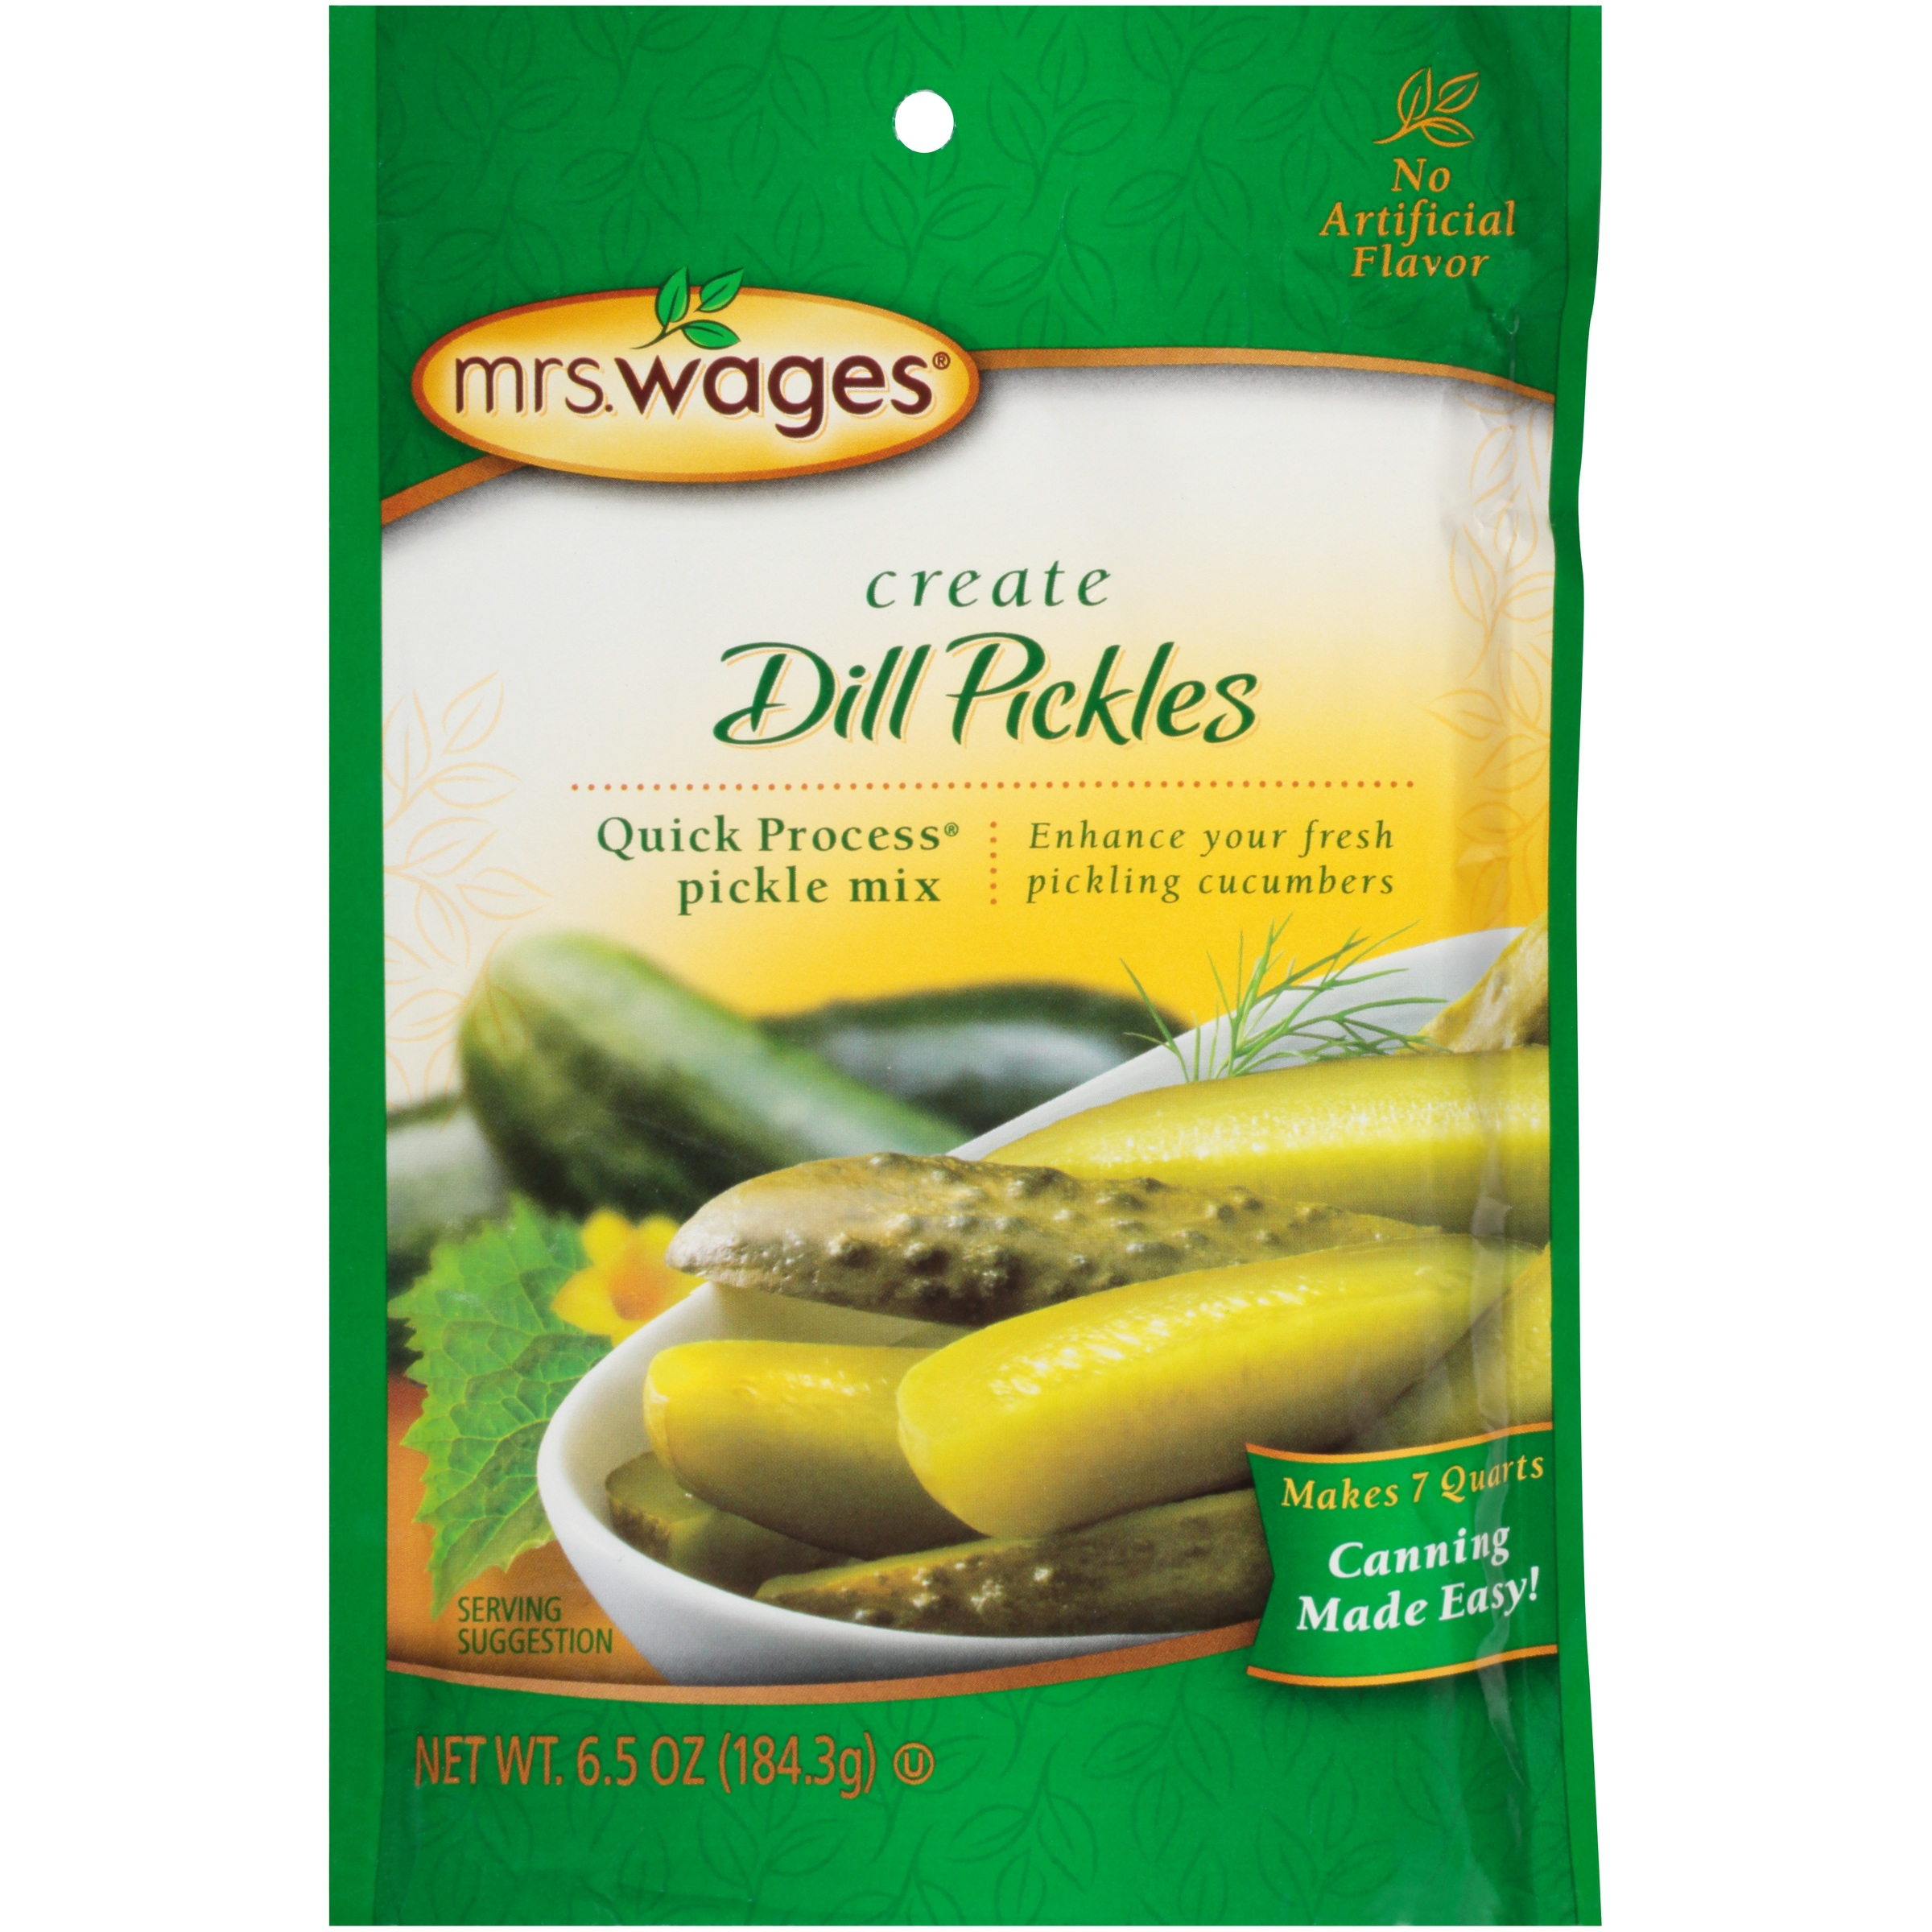 KENT PRECISION FOODS GROUP INC W621-J7425 6.5OZ Dill Pickle Mix